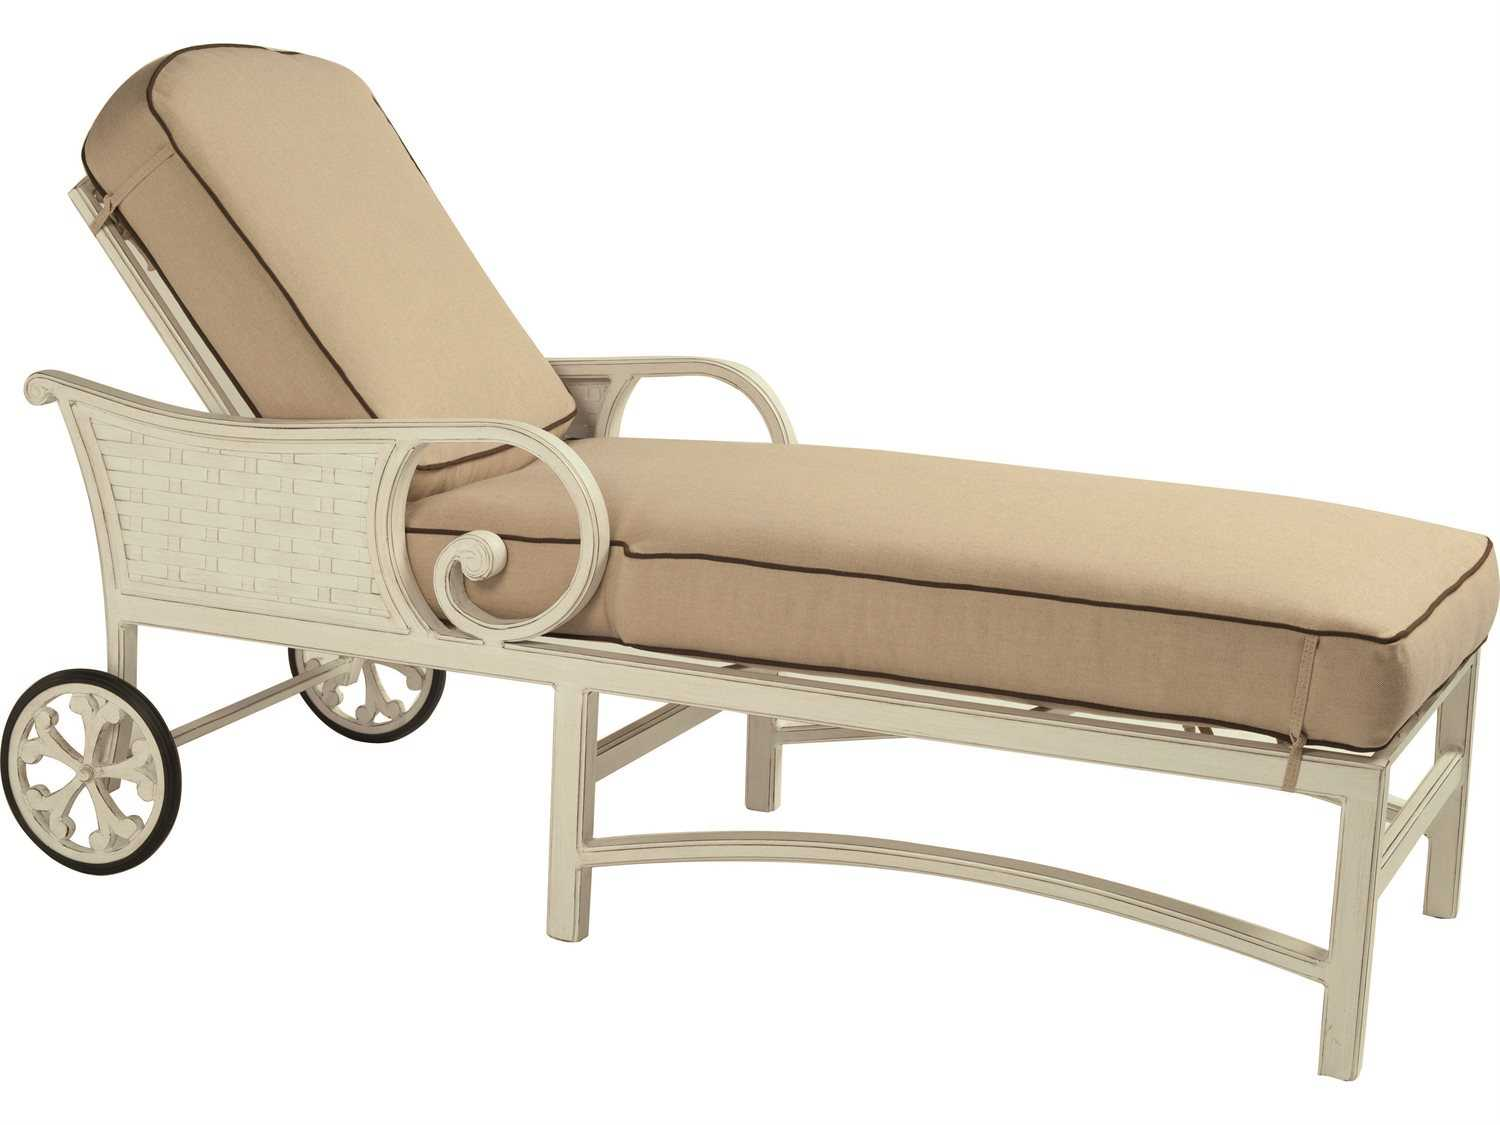 Castelle riviera cushion cast aluminum adjustable chaise for Cast aluminum chaise lounge